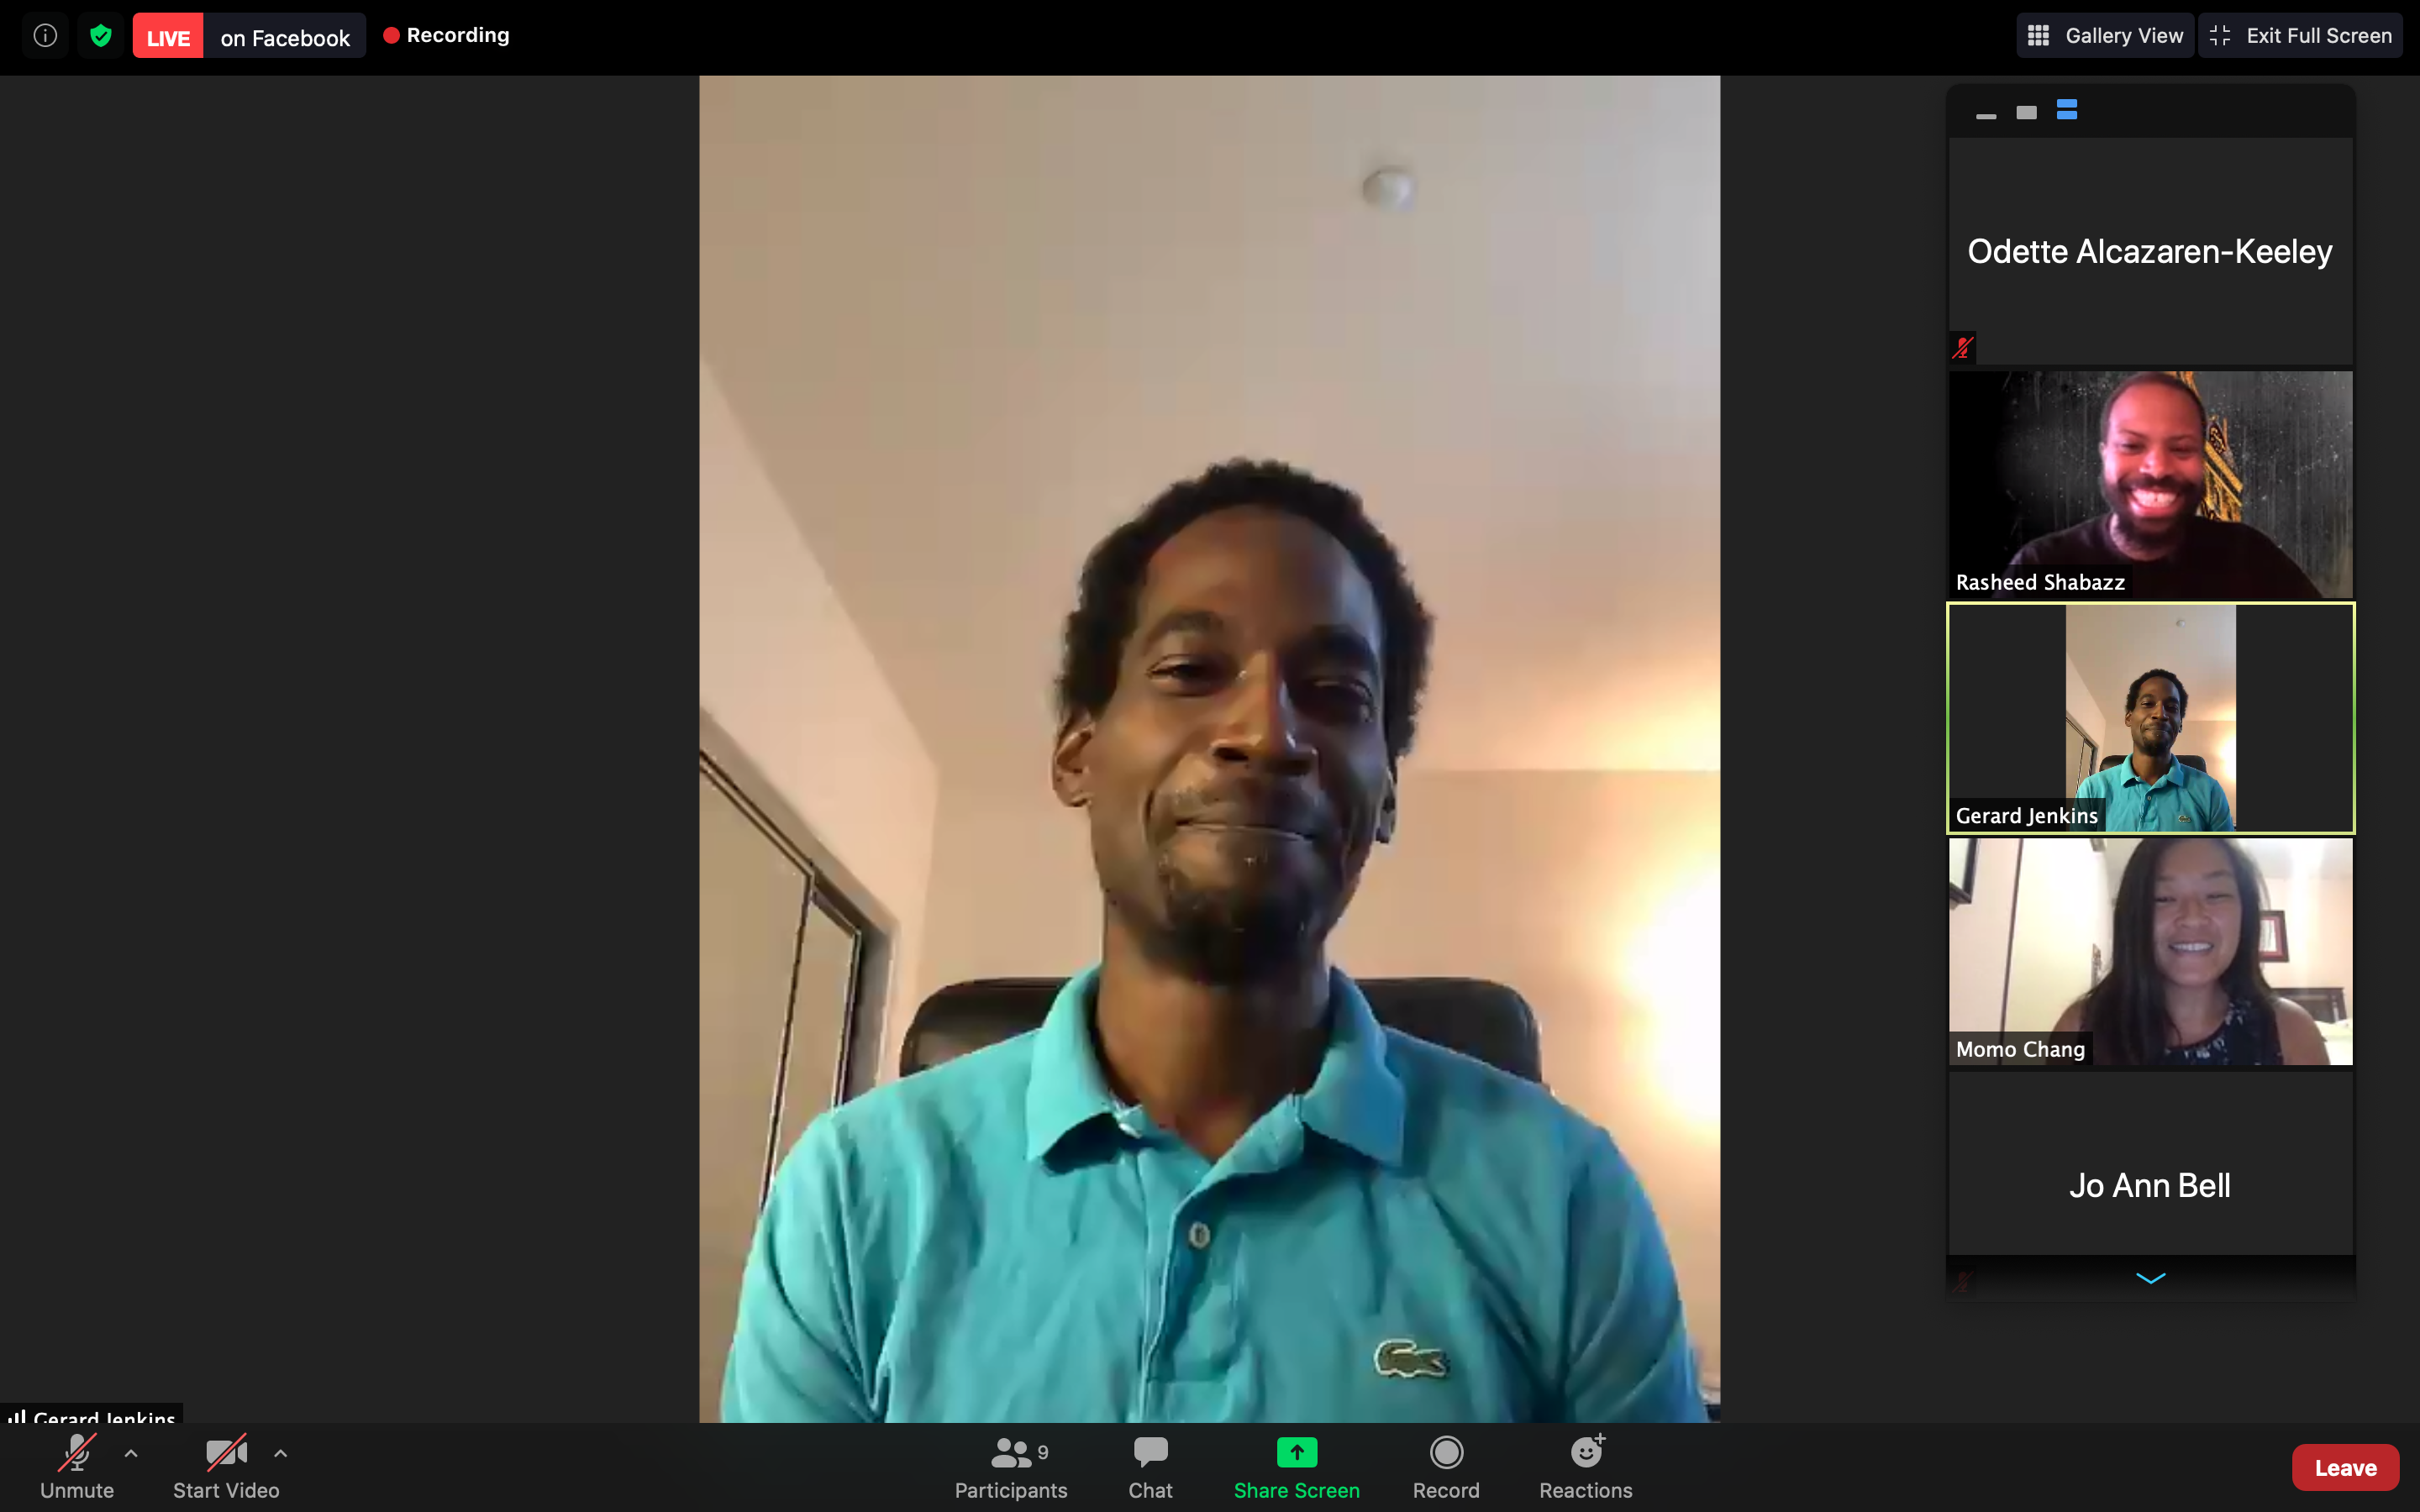 An African American man wearing a turquoise shirt speaks on a Zoom presentation.